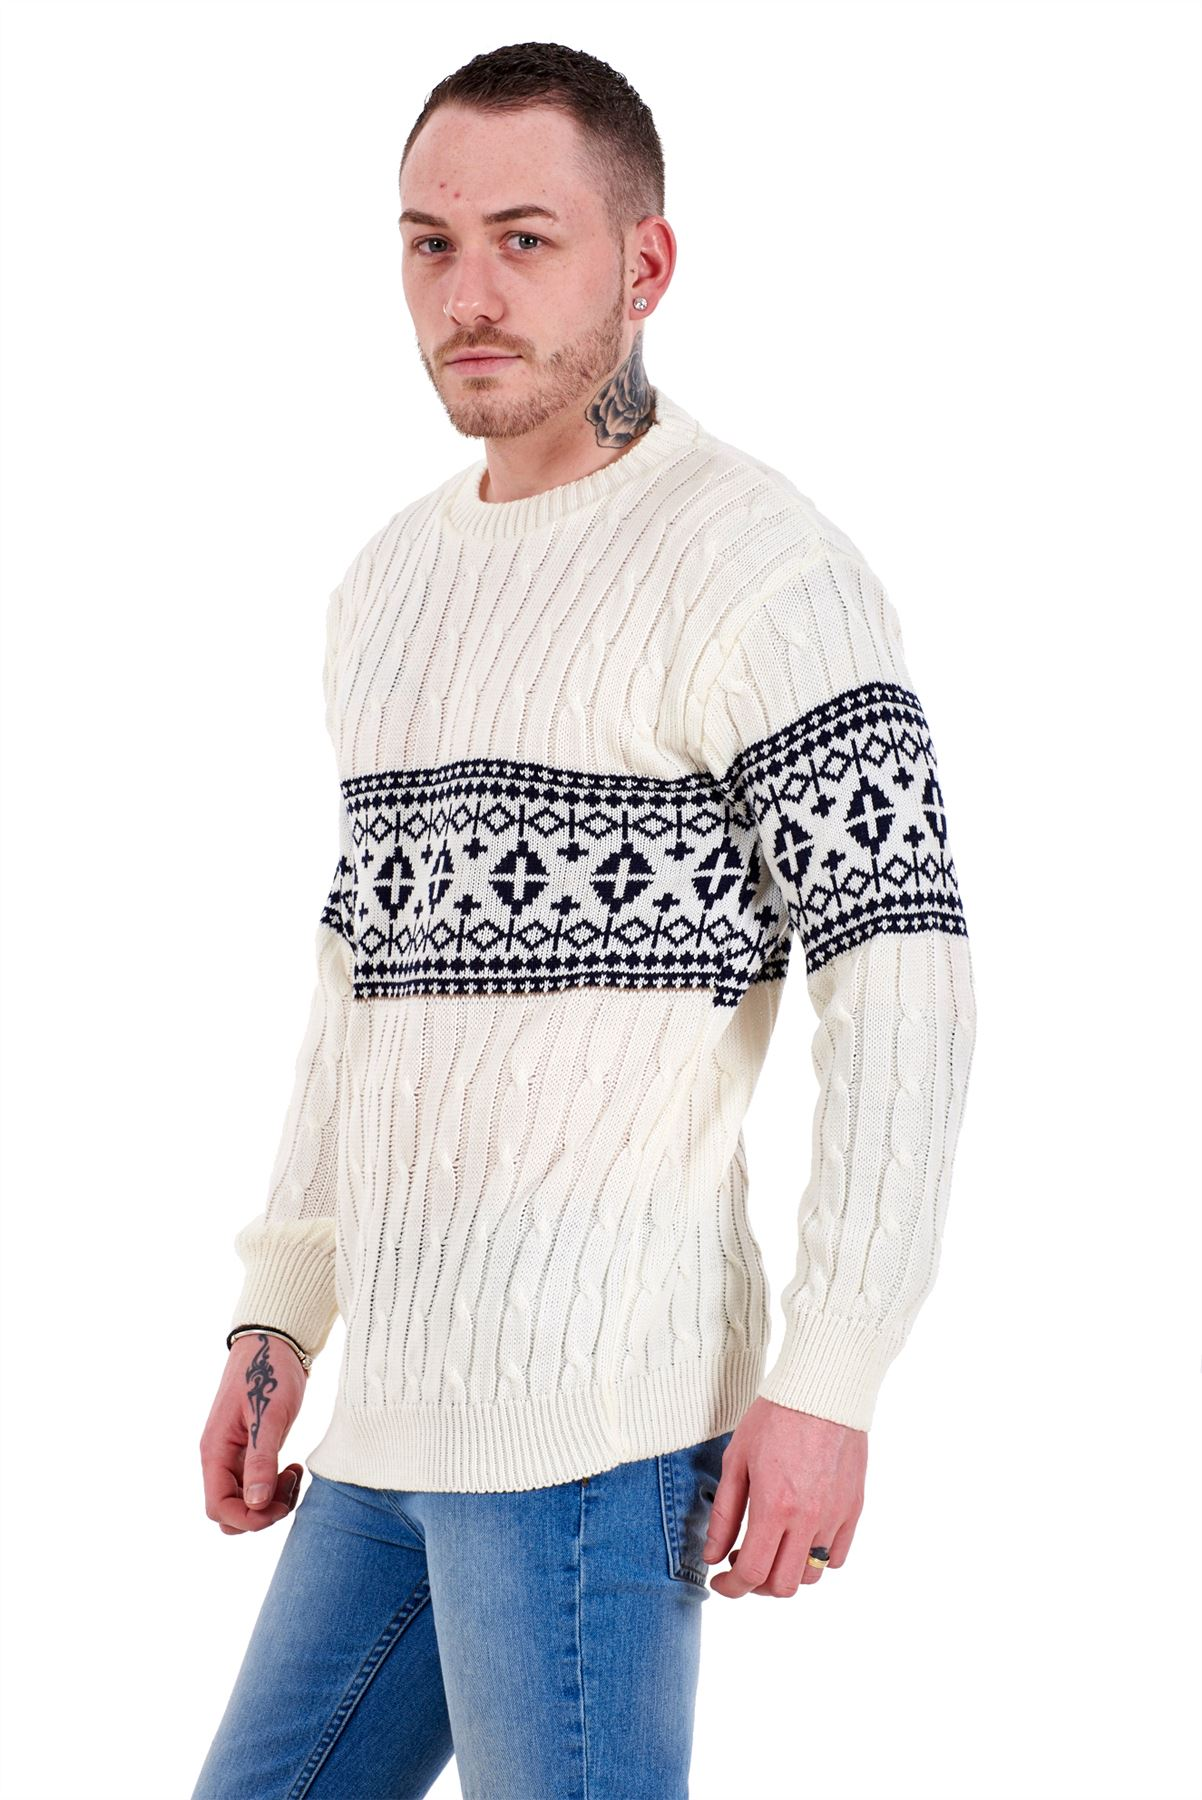 Mens-New-Cable-Knit-Jacquard-Long-Sleeve-Pullover-Jumper-Sweater-S-to-XL thumbnail 8